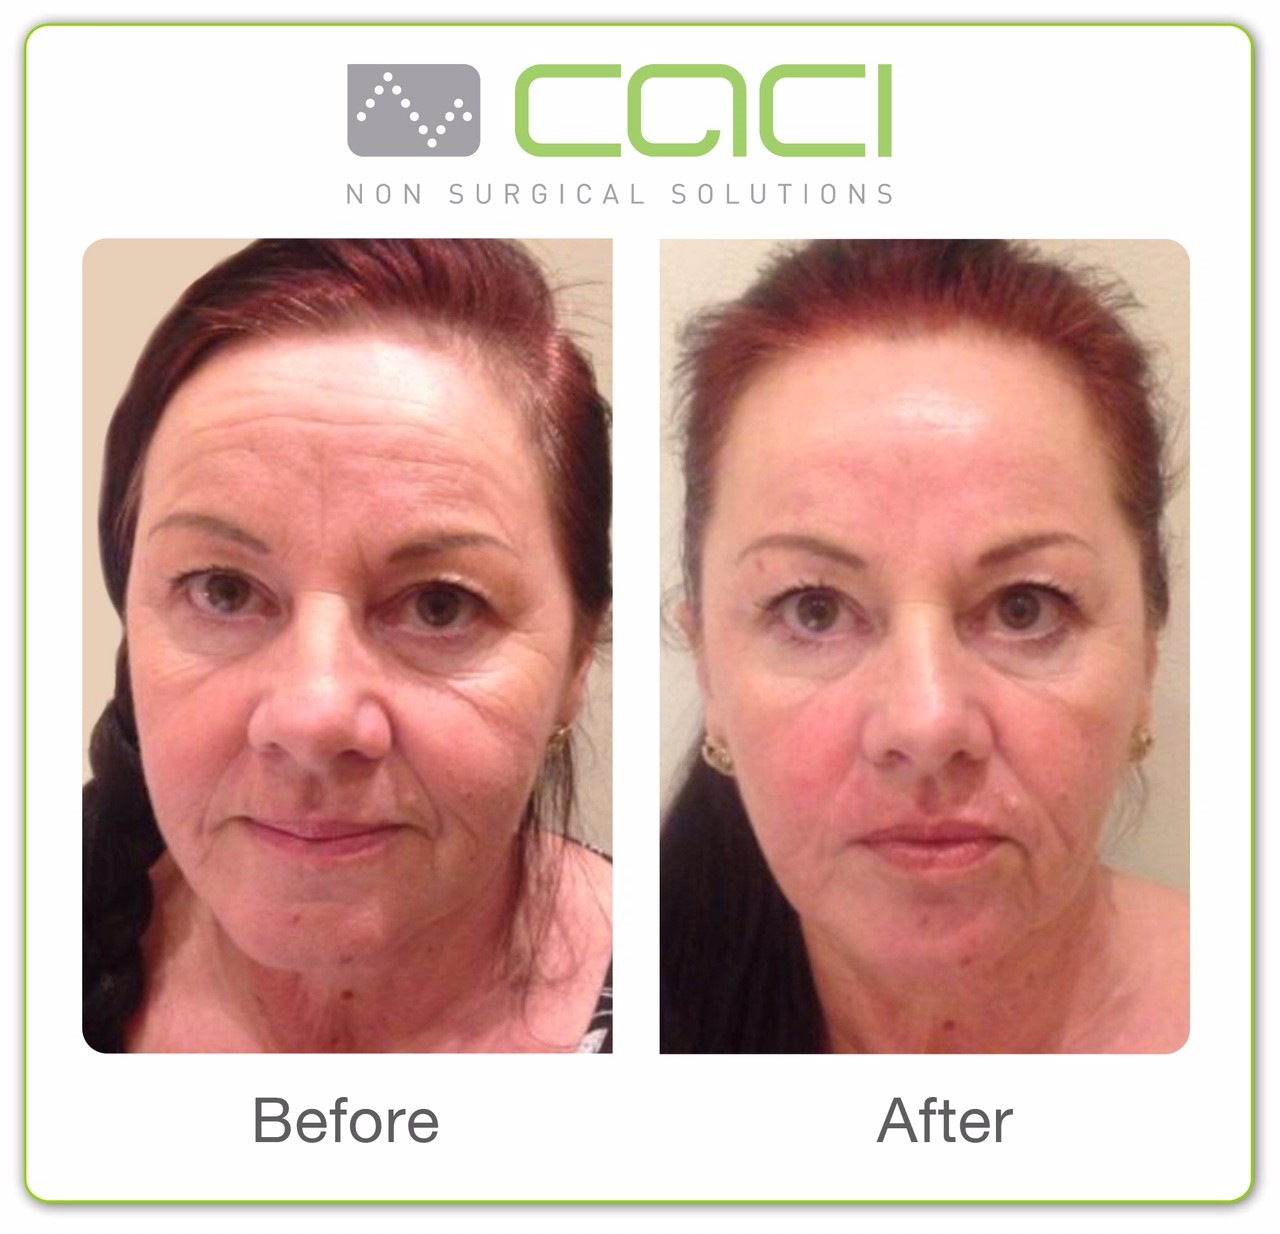 Before and after images following CACI Treatment